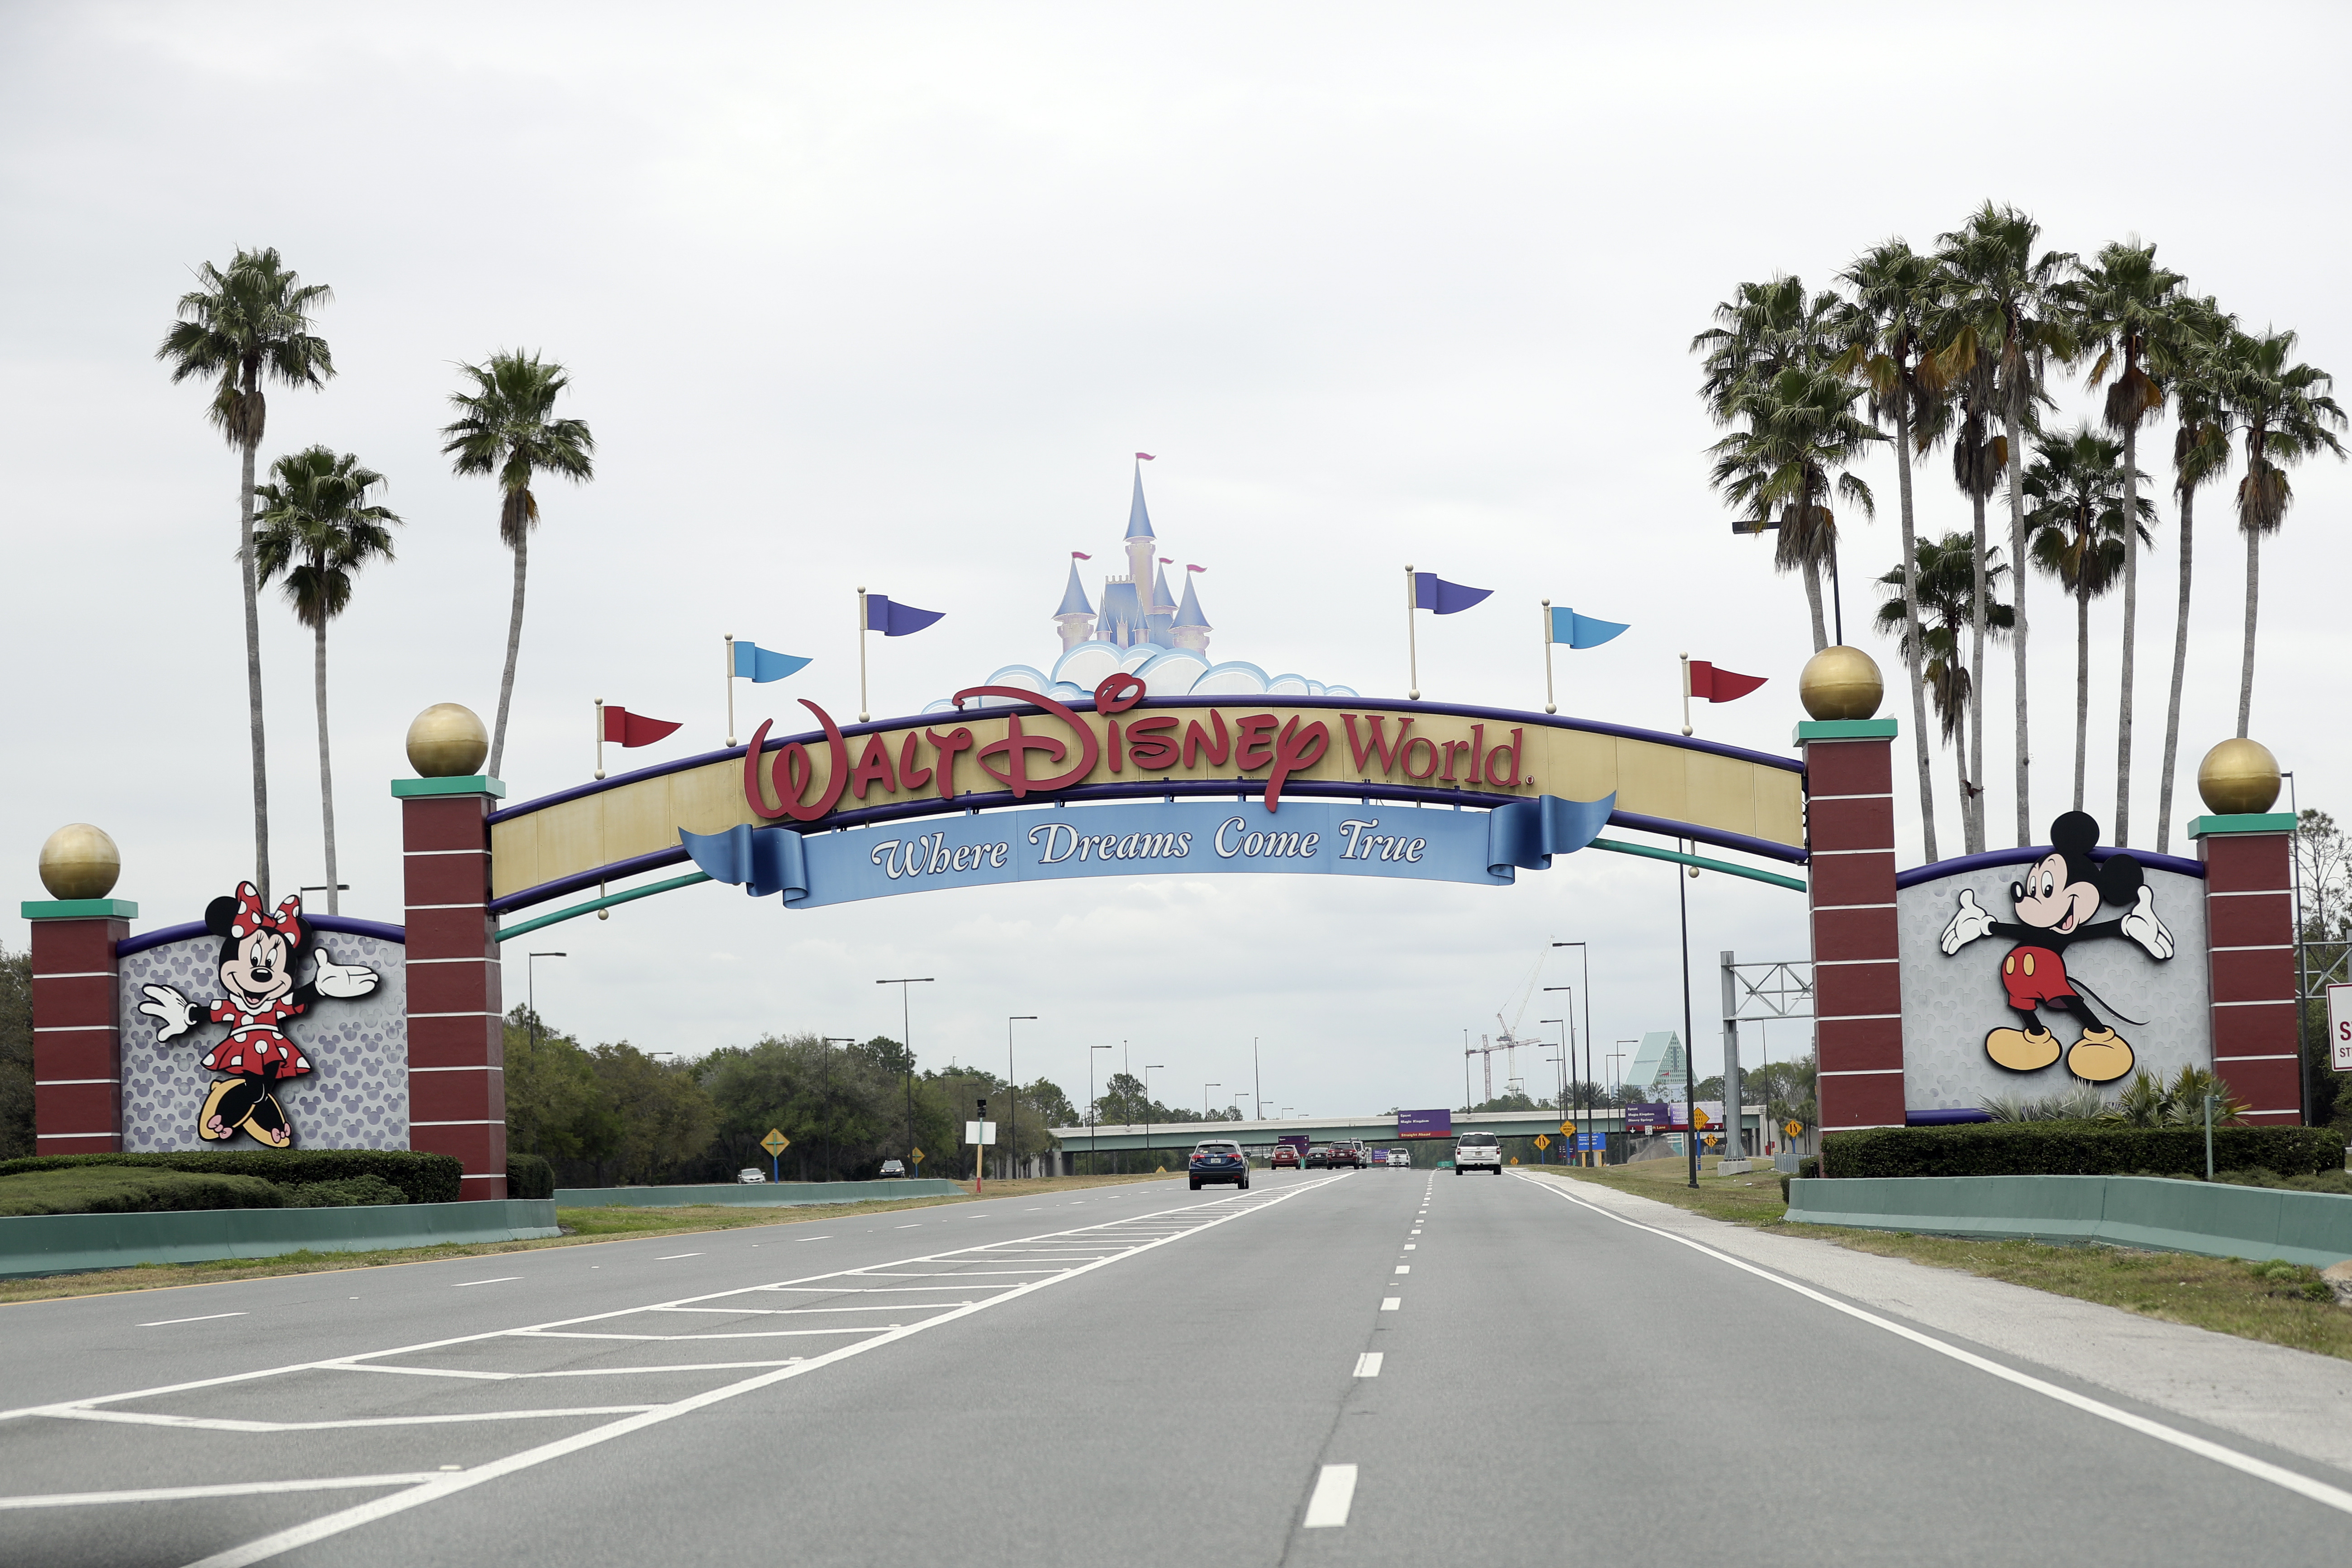 FILE - In this Monday, March 16, 2020, file photo, the road to the entrance of Walt Disney World has few cars, in Lake Buena Vista, Fla. Two more unions have reached agreements with Walt Disney World over furloughs caused by the theme park resort's closure during the new coronavirus outbreak. The agreements reached late Friday, April 10, apply to security guards and workers involved in facilities and operations. (AP Photo/John Raoux, File)